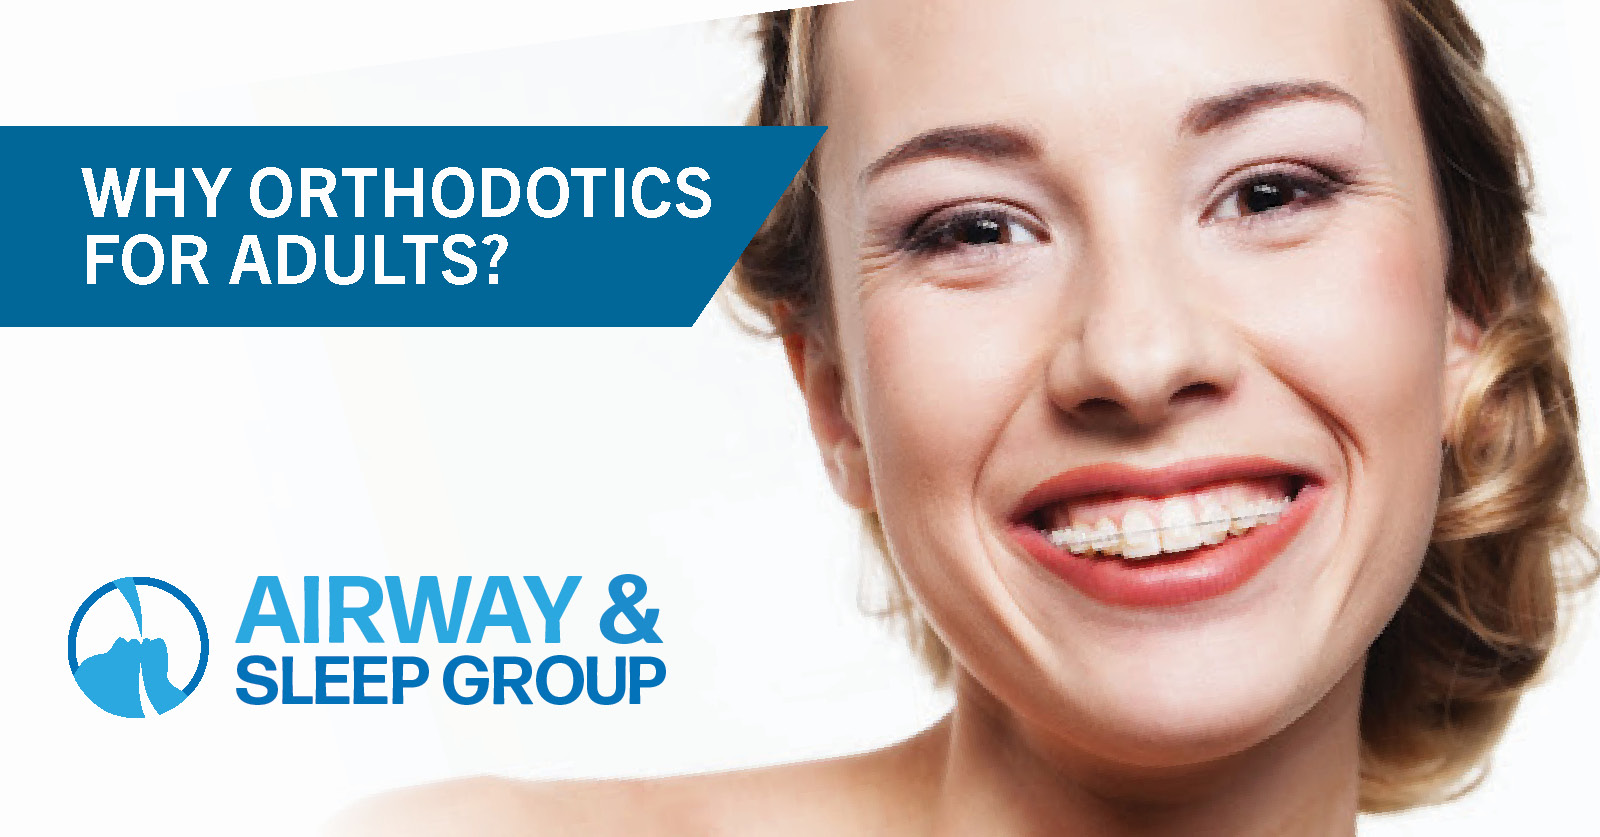 Why Orthodontics for Adults?